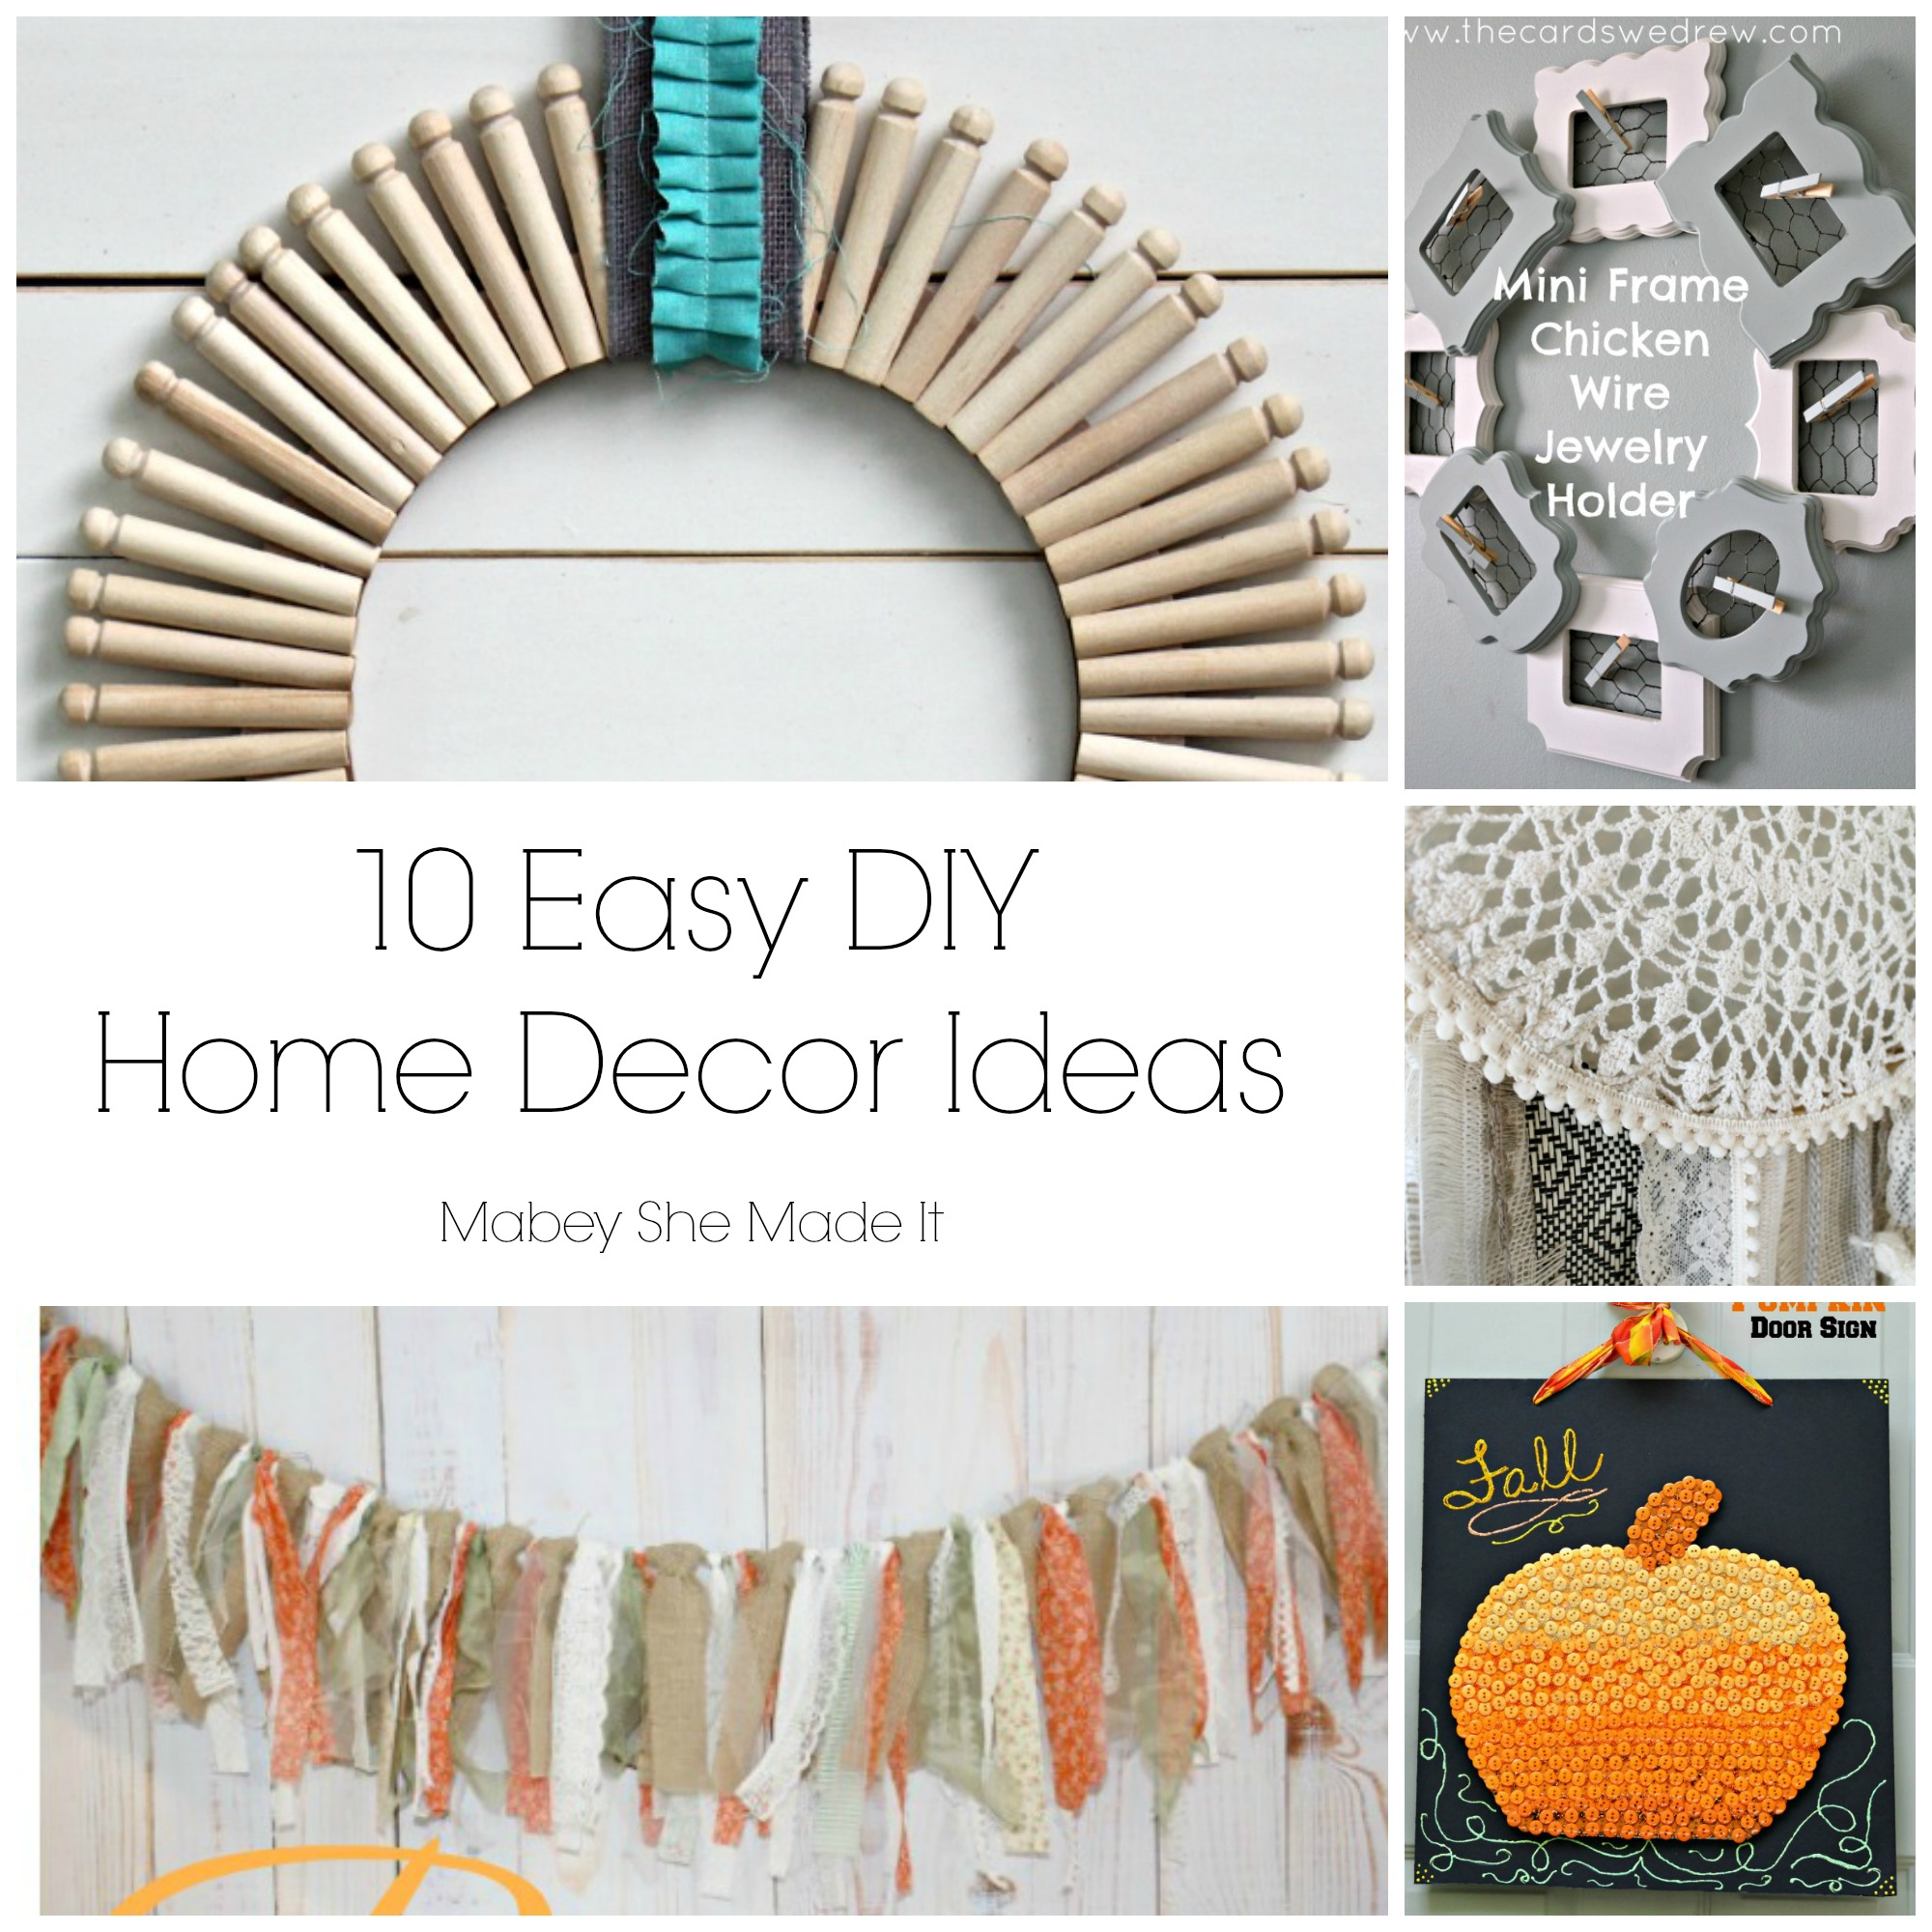 House Decors Ideas 10 Fun Home Decor Ideas Mabey She Made It